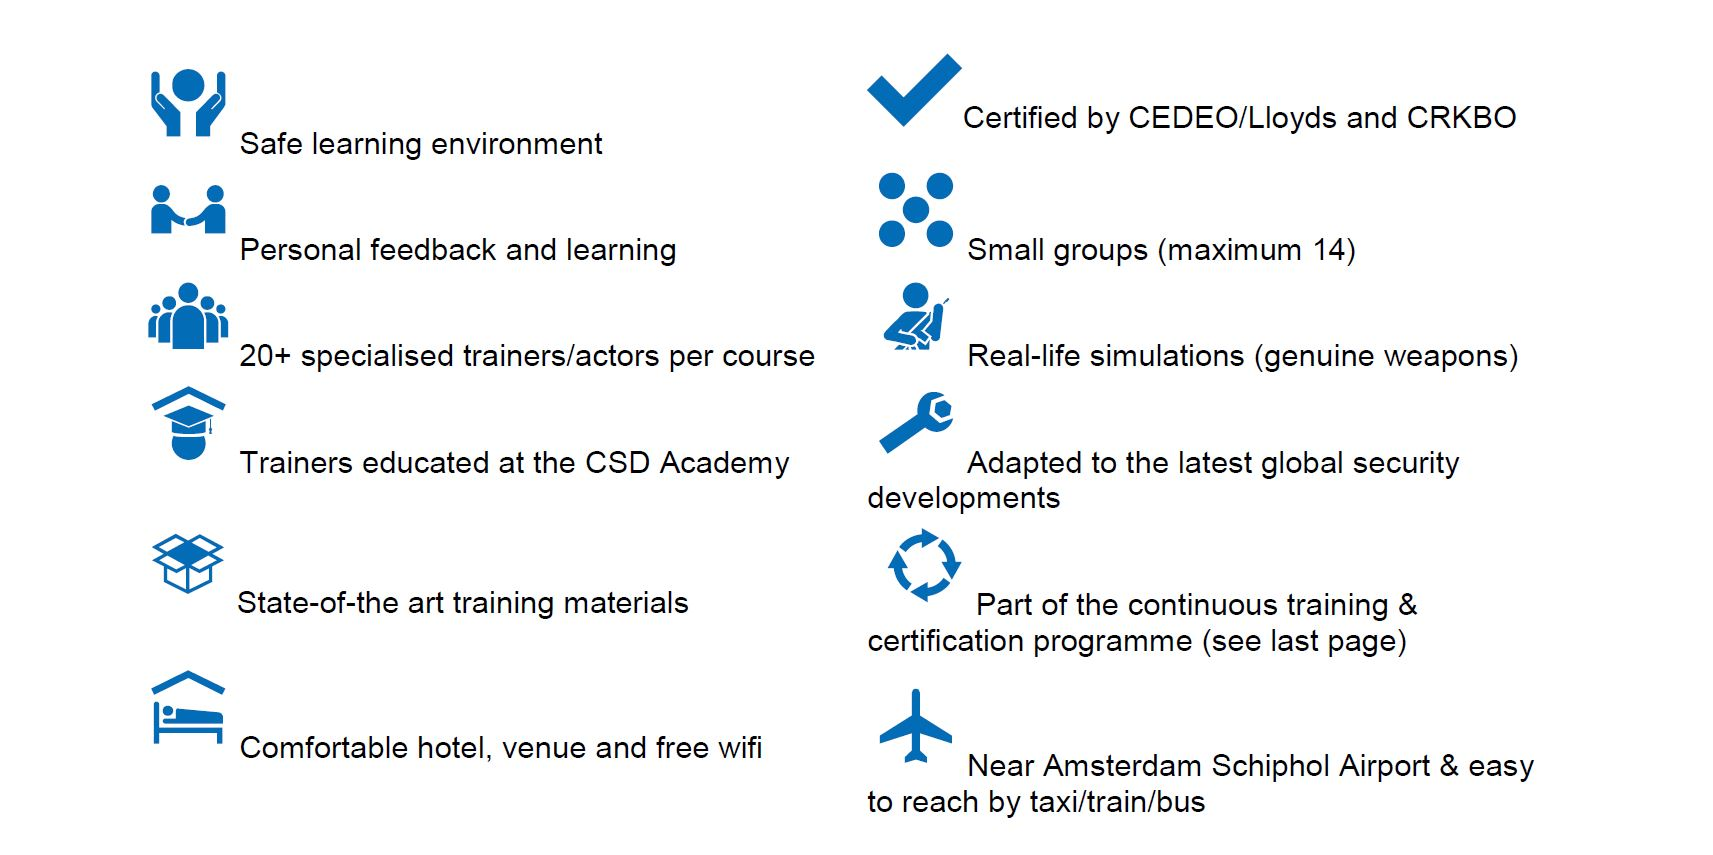 Course Basic Safety Security Wur Data Training Courses